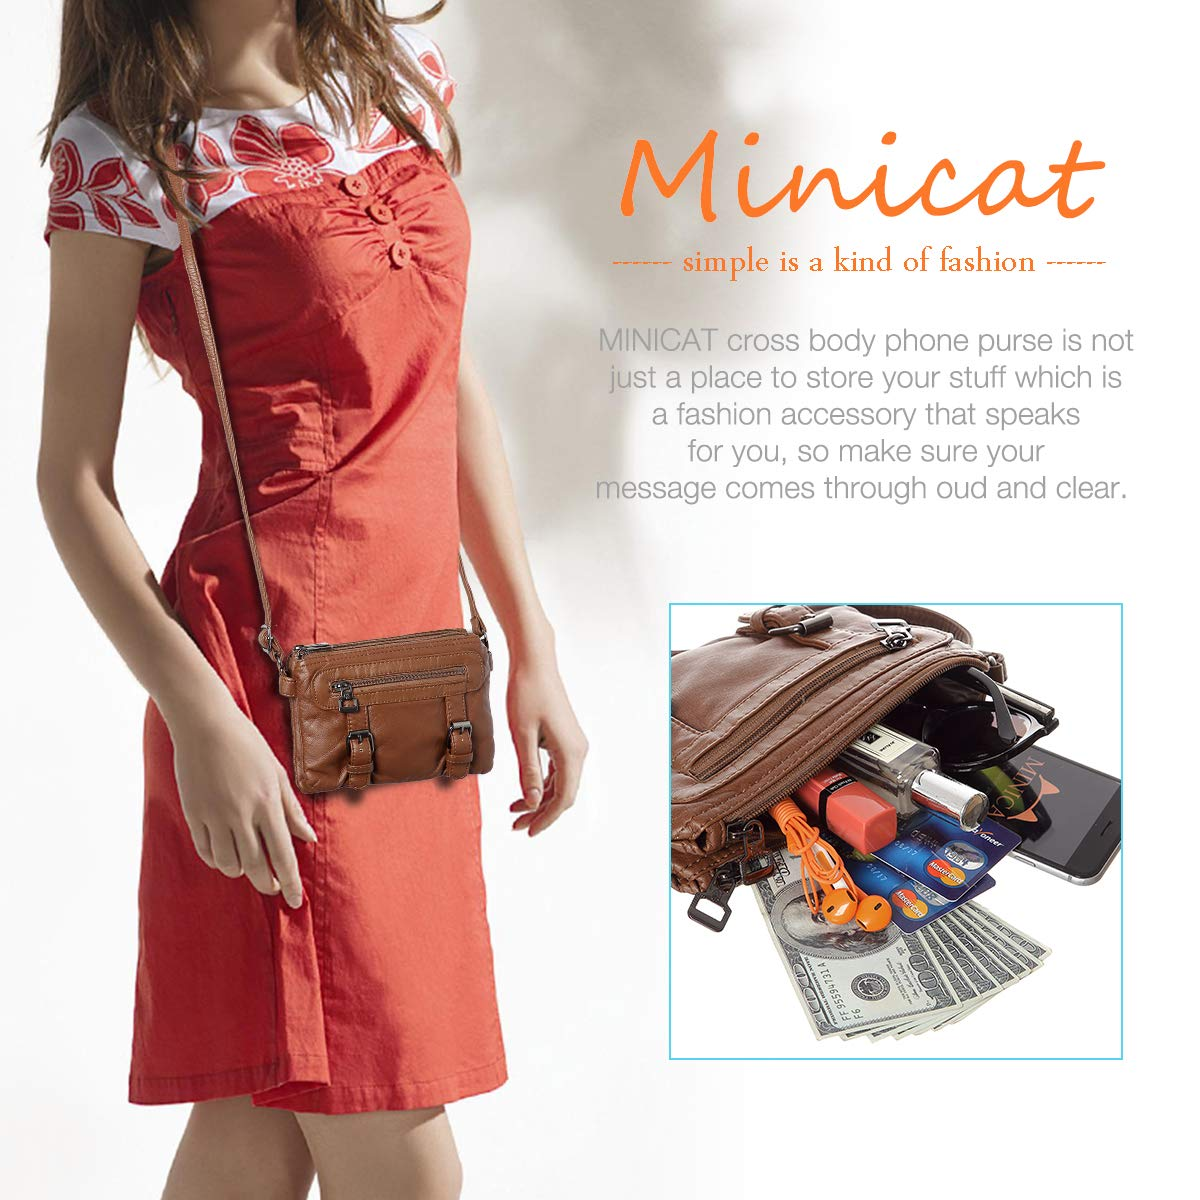 Women Soft Synthetic Leather Small Crossbody Bag Mini Crossbody Cell Phone Purse Wallet(Brown) by MINICAT (Image #7)